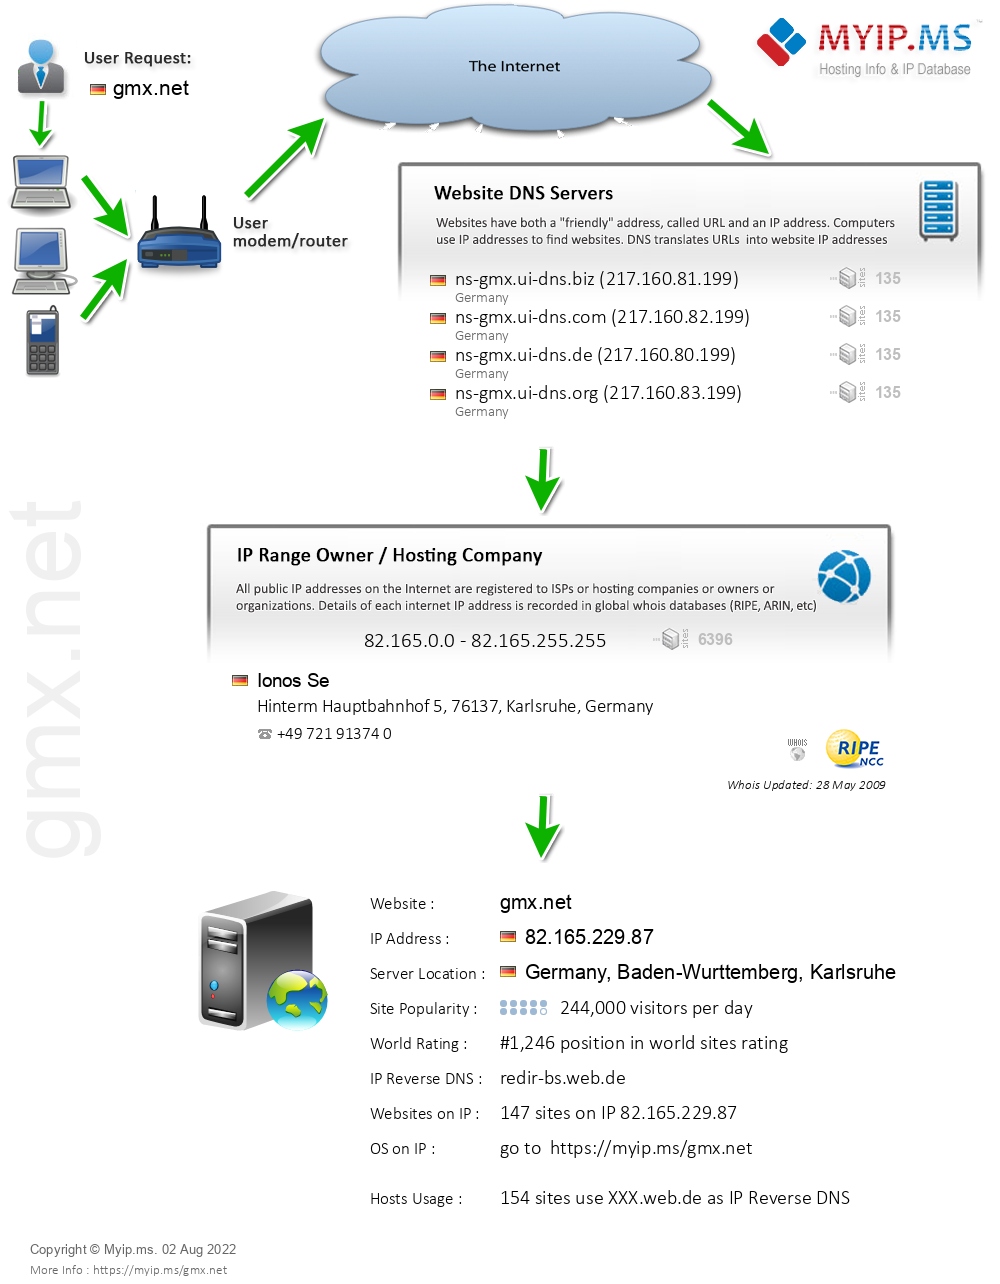 Gmx.net - Website Hosting Visual IP Diagram